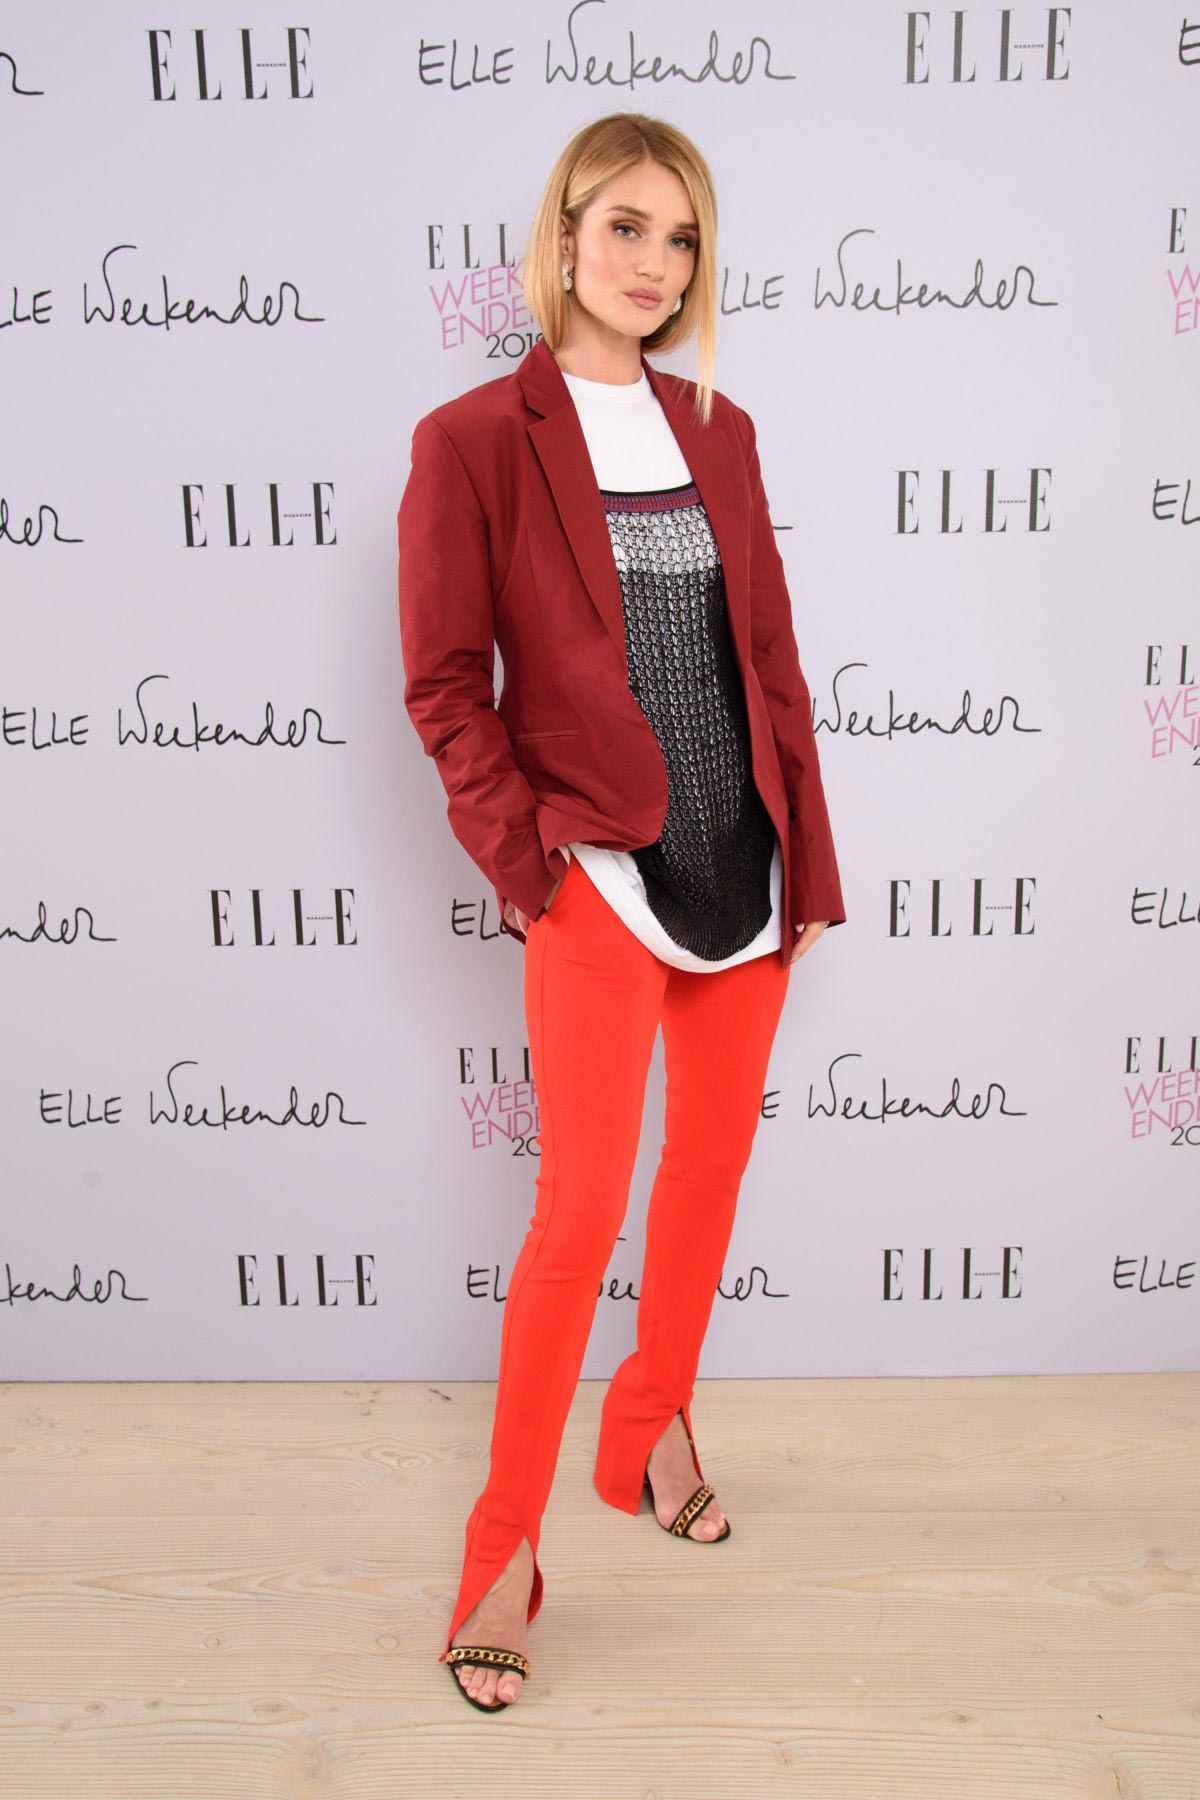 Rosie Huntington-Whiteley at Elle Weekender 2018 at Saatchi Gallery in London 2018/12/03 1